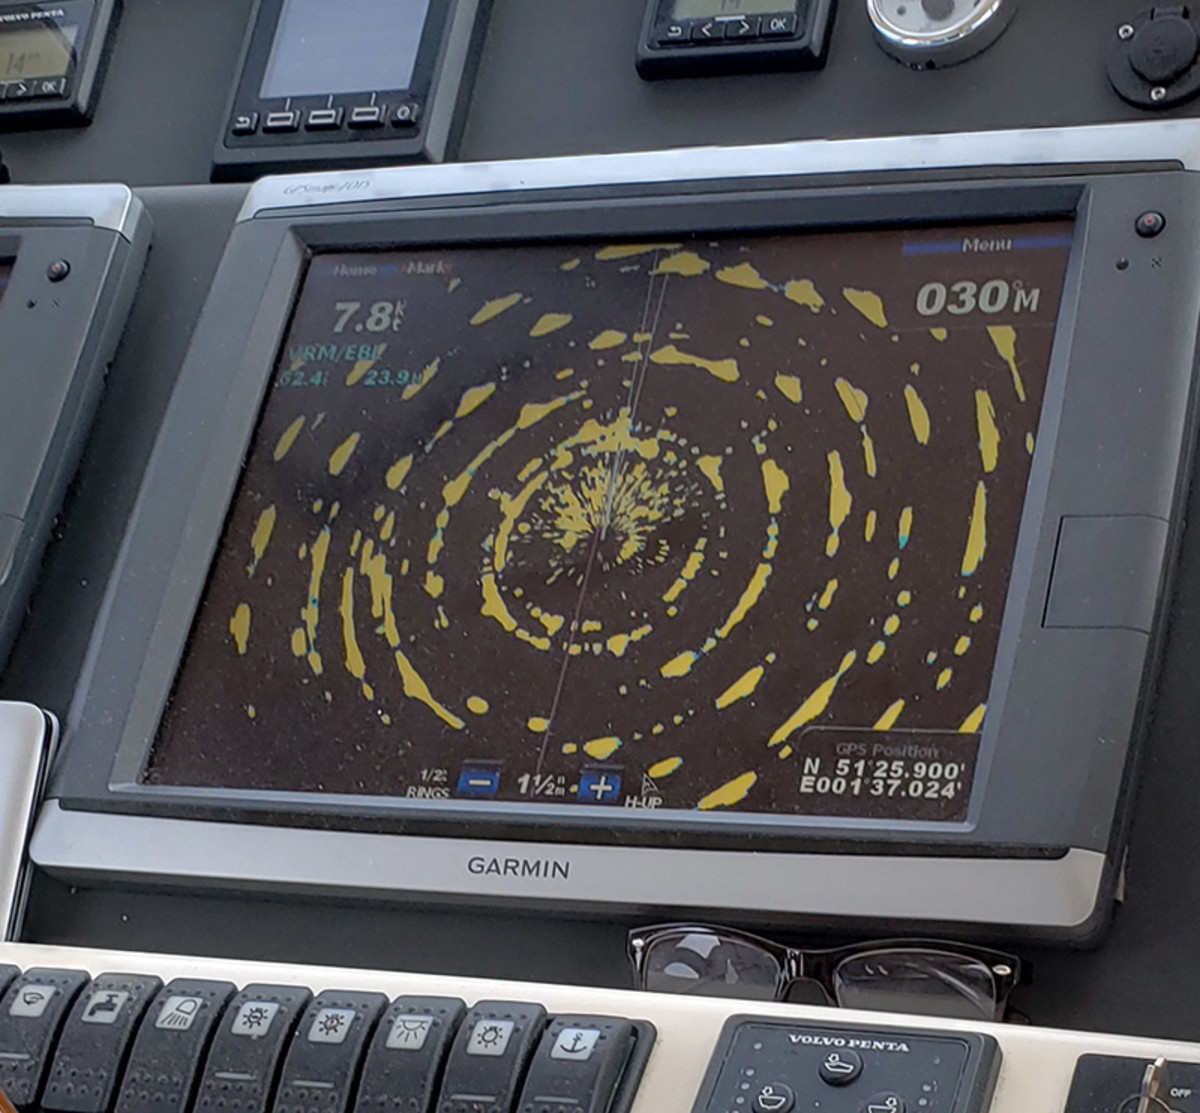 This image depicts radar returns from a U.K wind farm and was provided by Eric Hansen, a member of an ocean advocacy group.